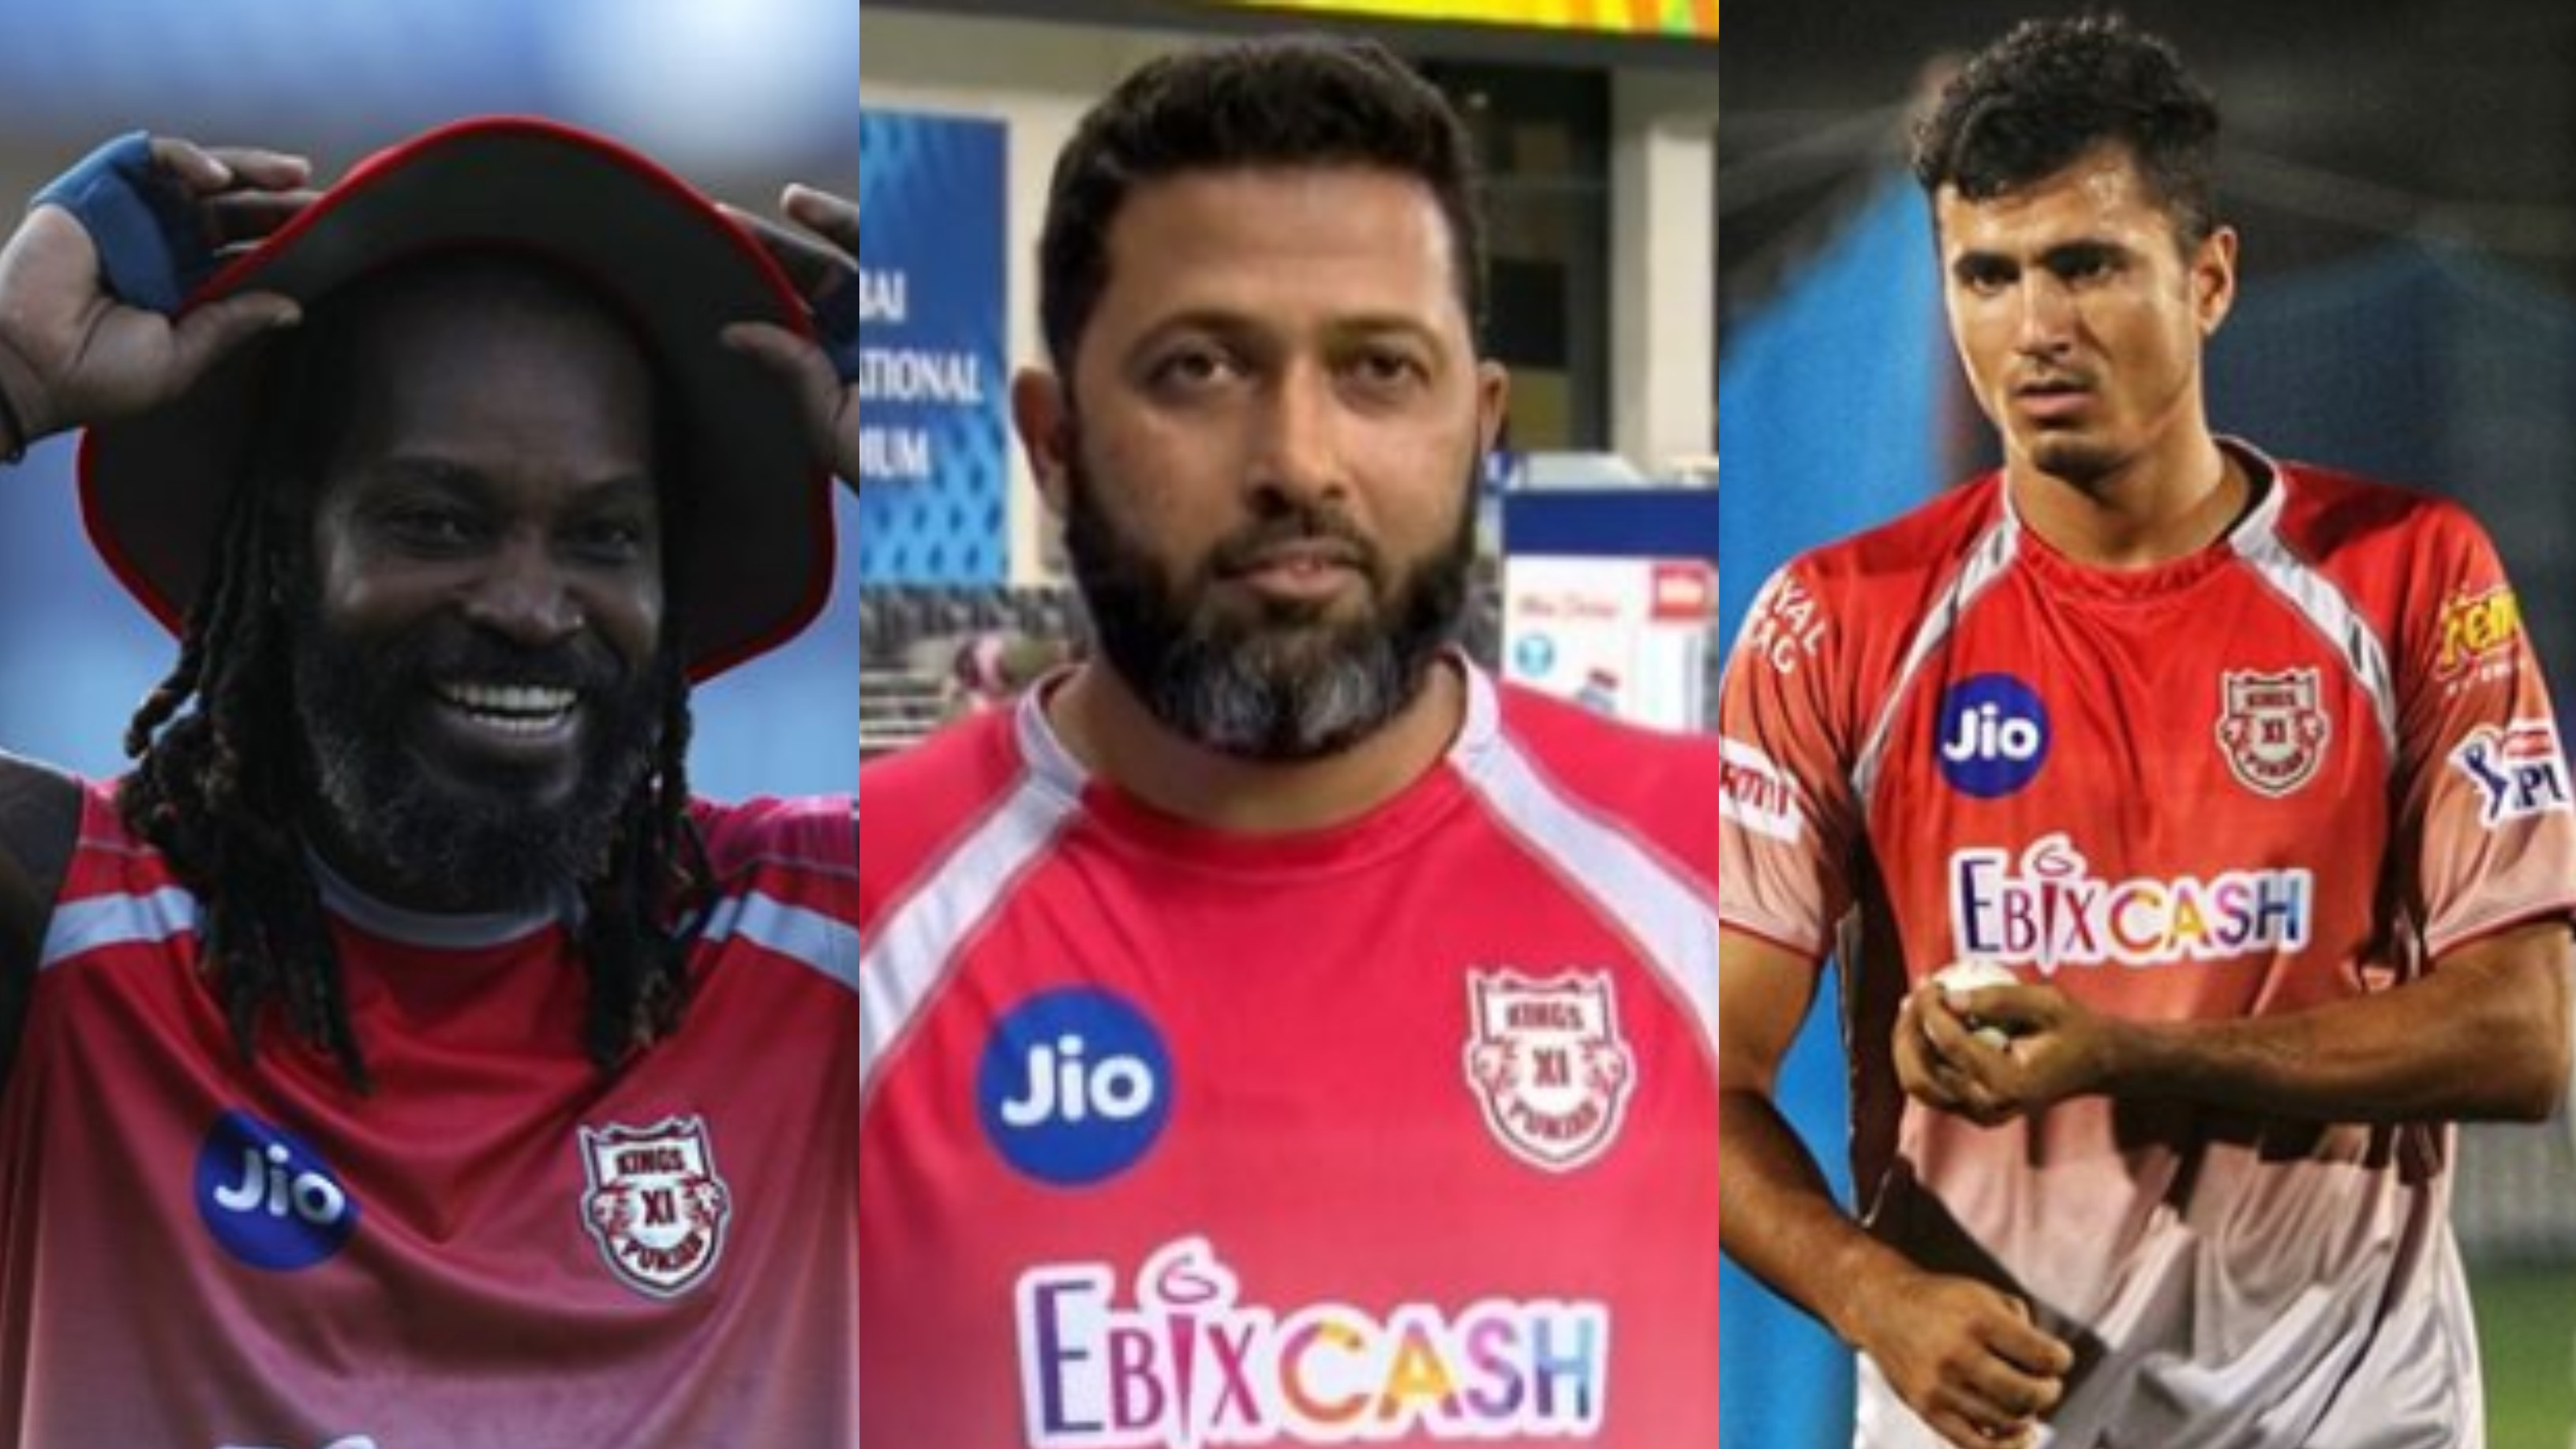 IPL 2020: Gayle and Mujeeb should get to play soon, says KXIP batting coach Wasim Jaffer